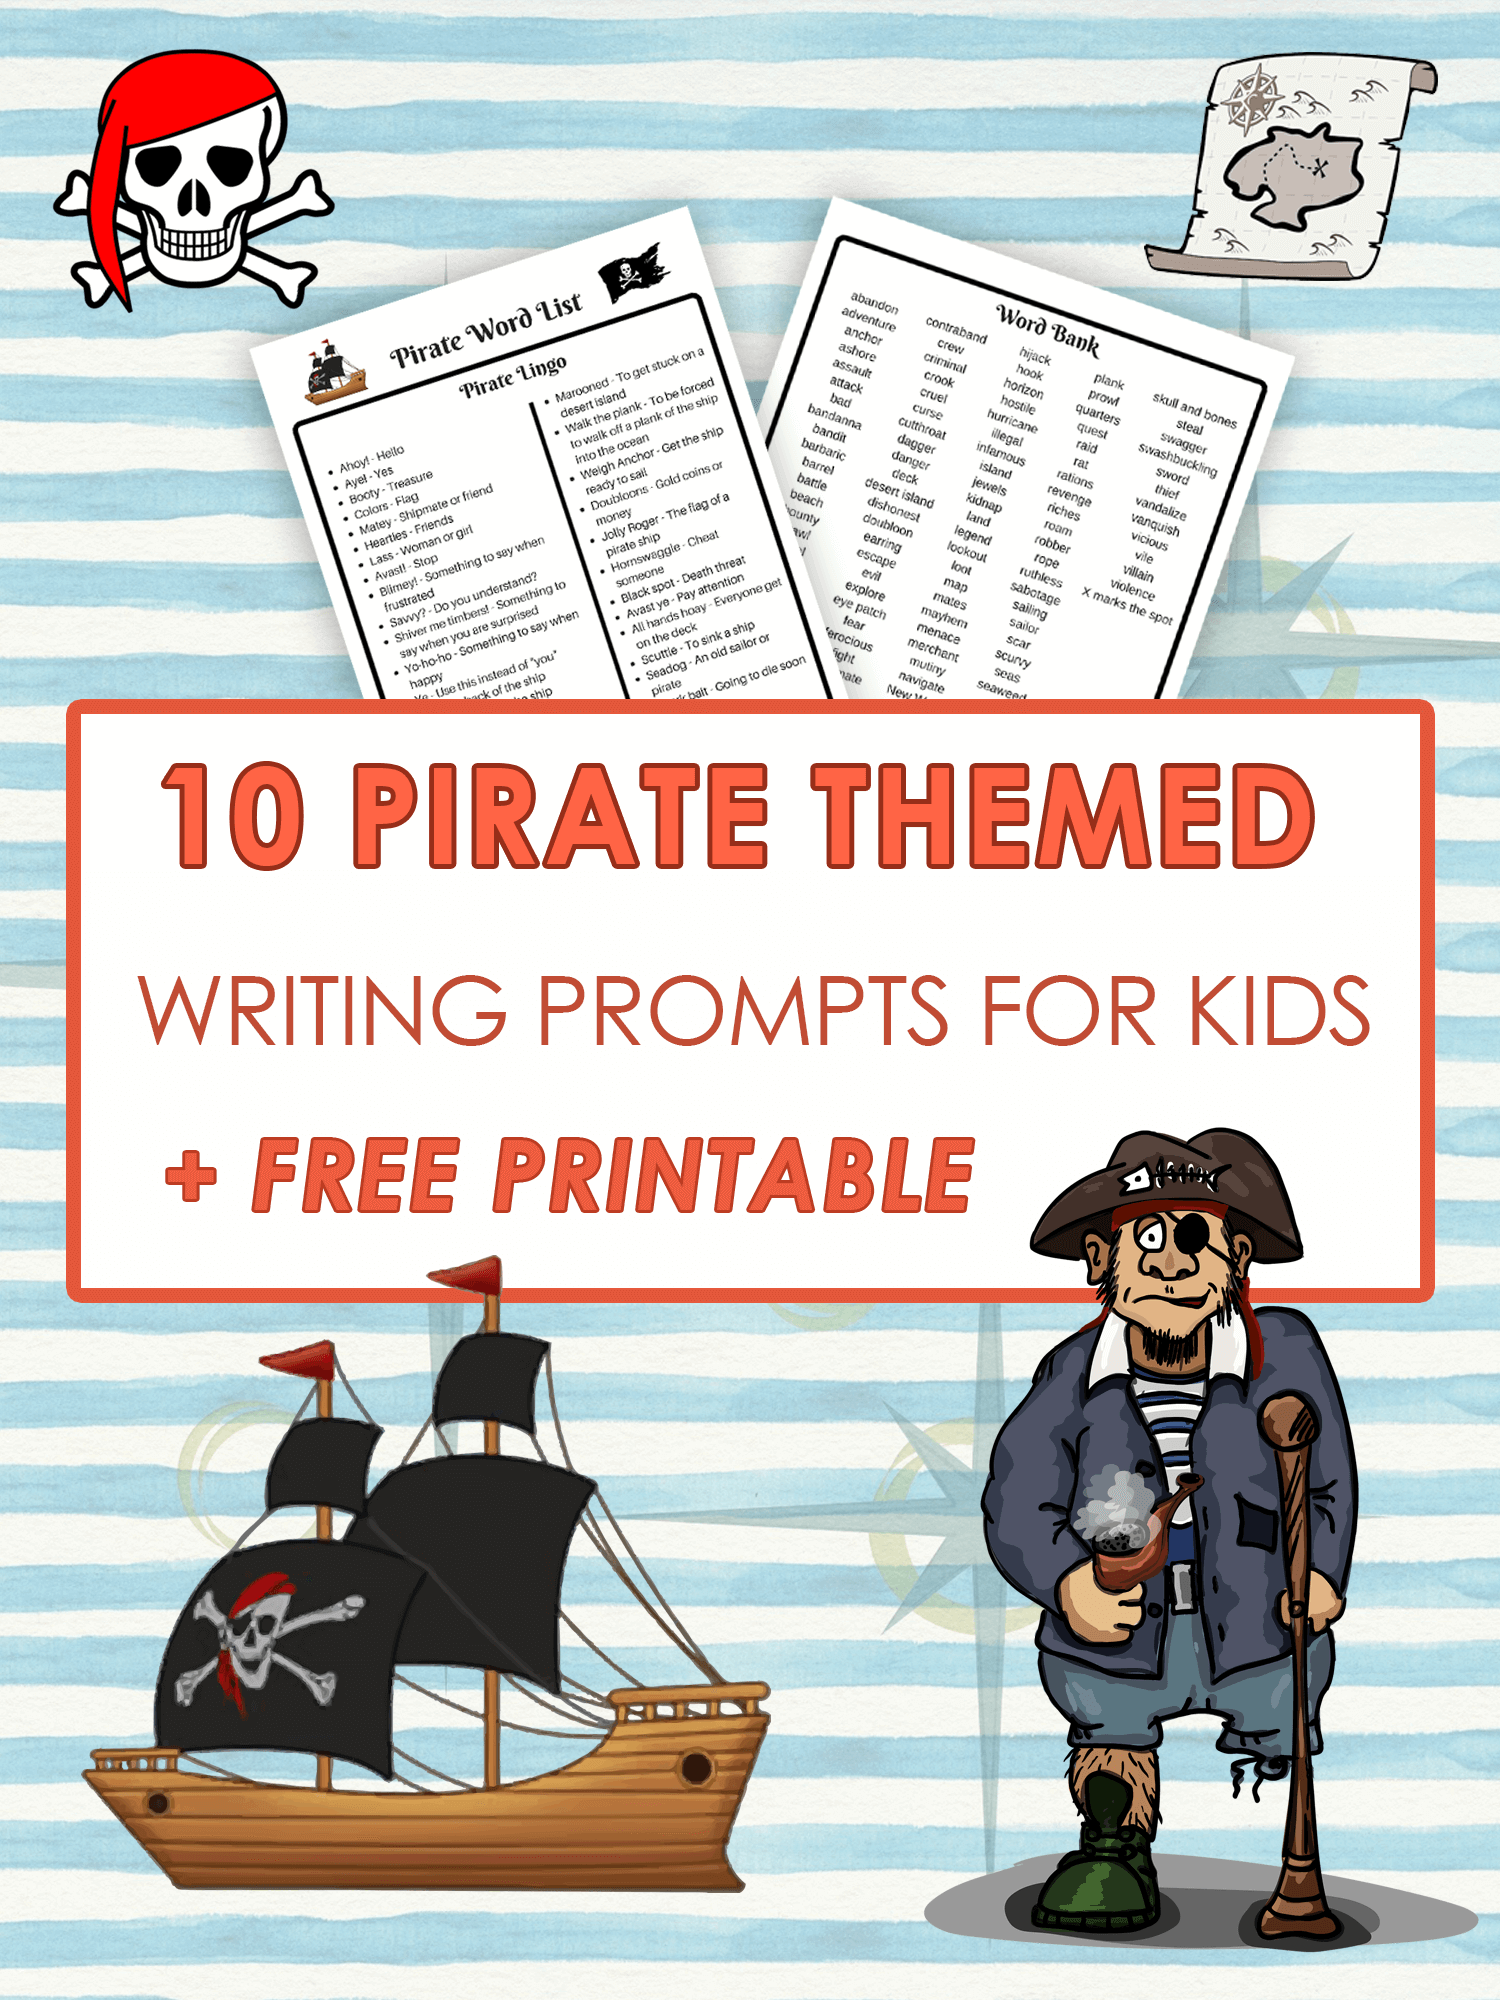 image regarding Pirates Printable Schedule identified as 10 Pirate Themed Crafting prompts for Children Picture Forest